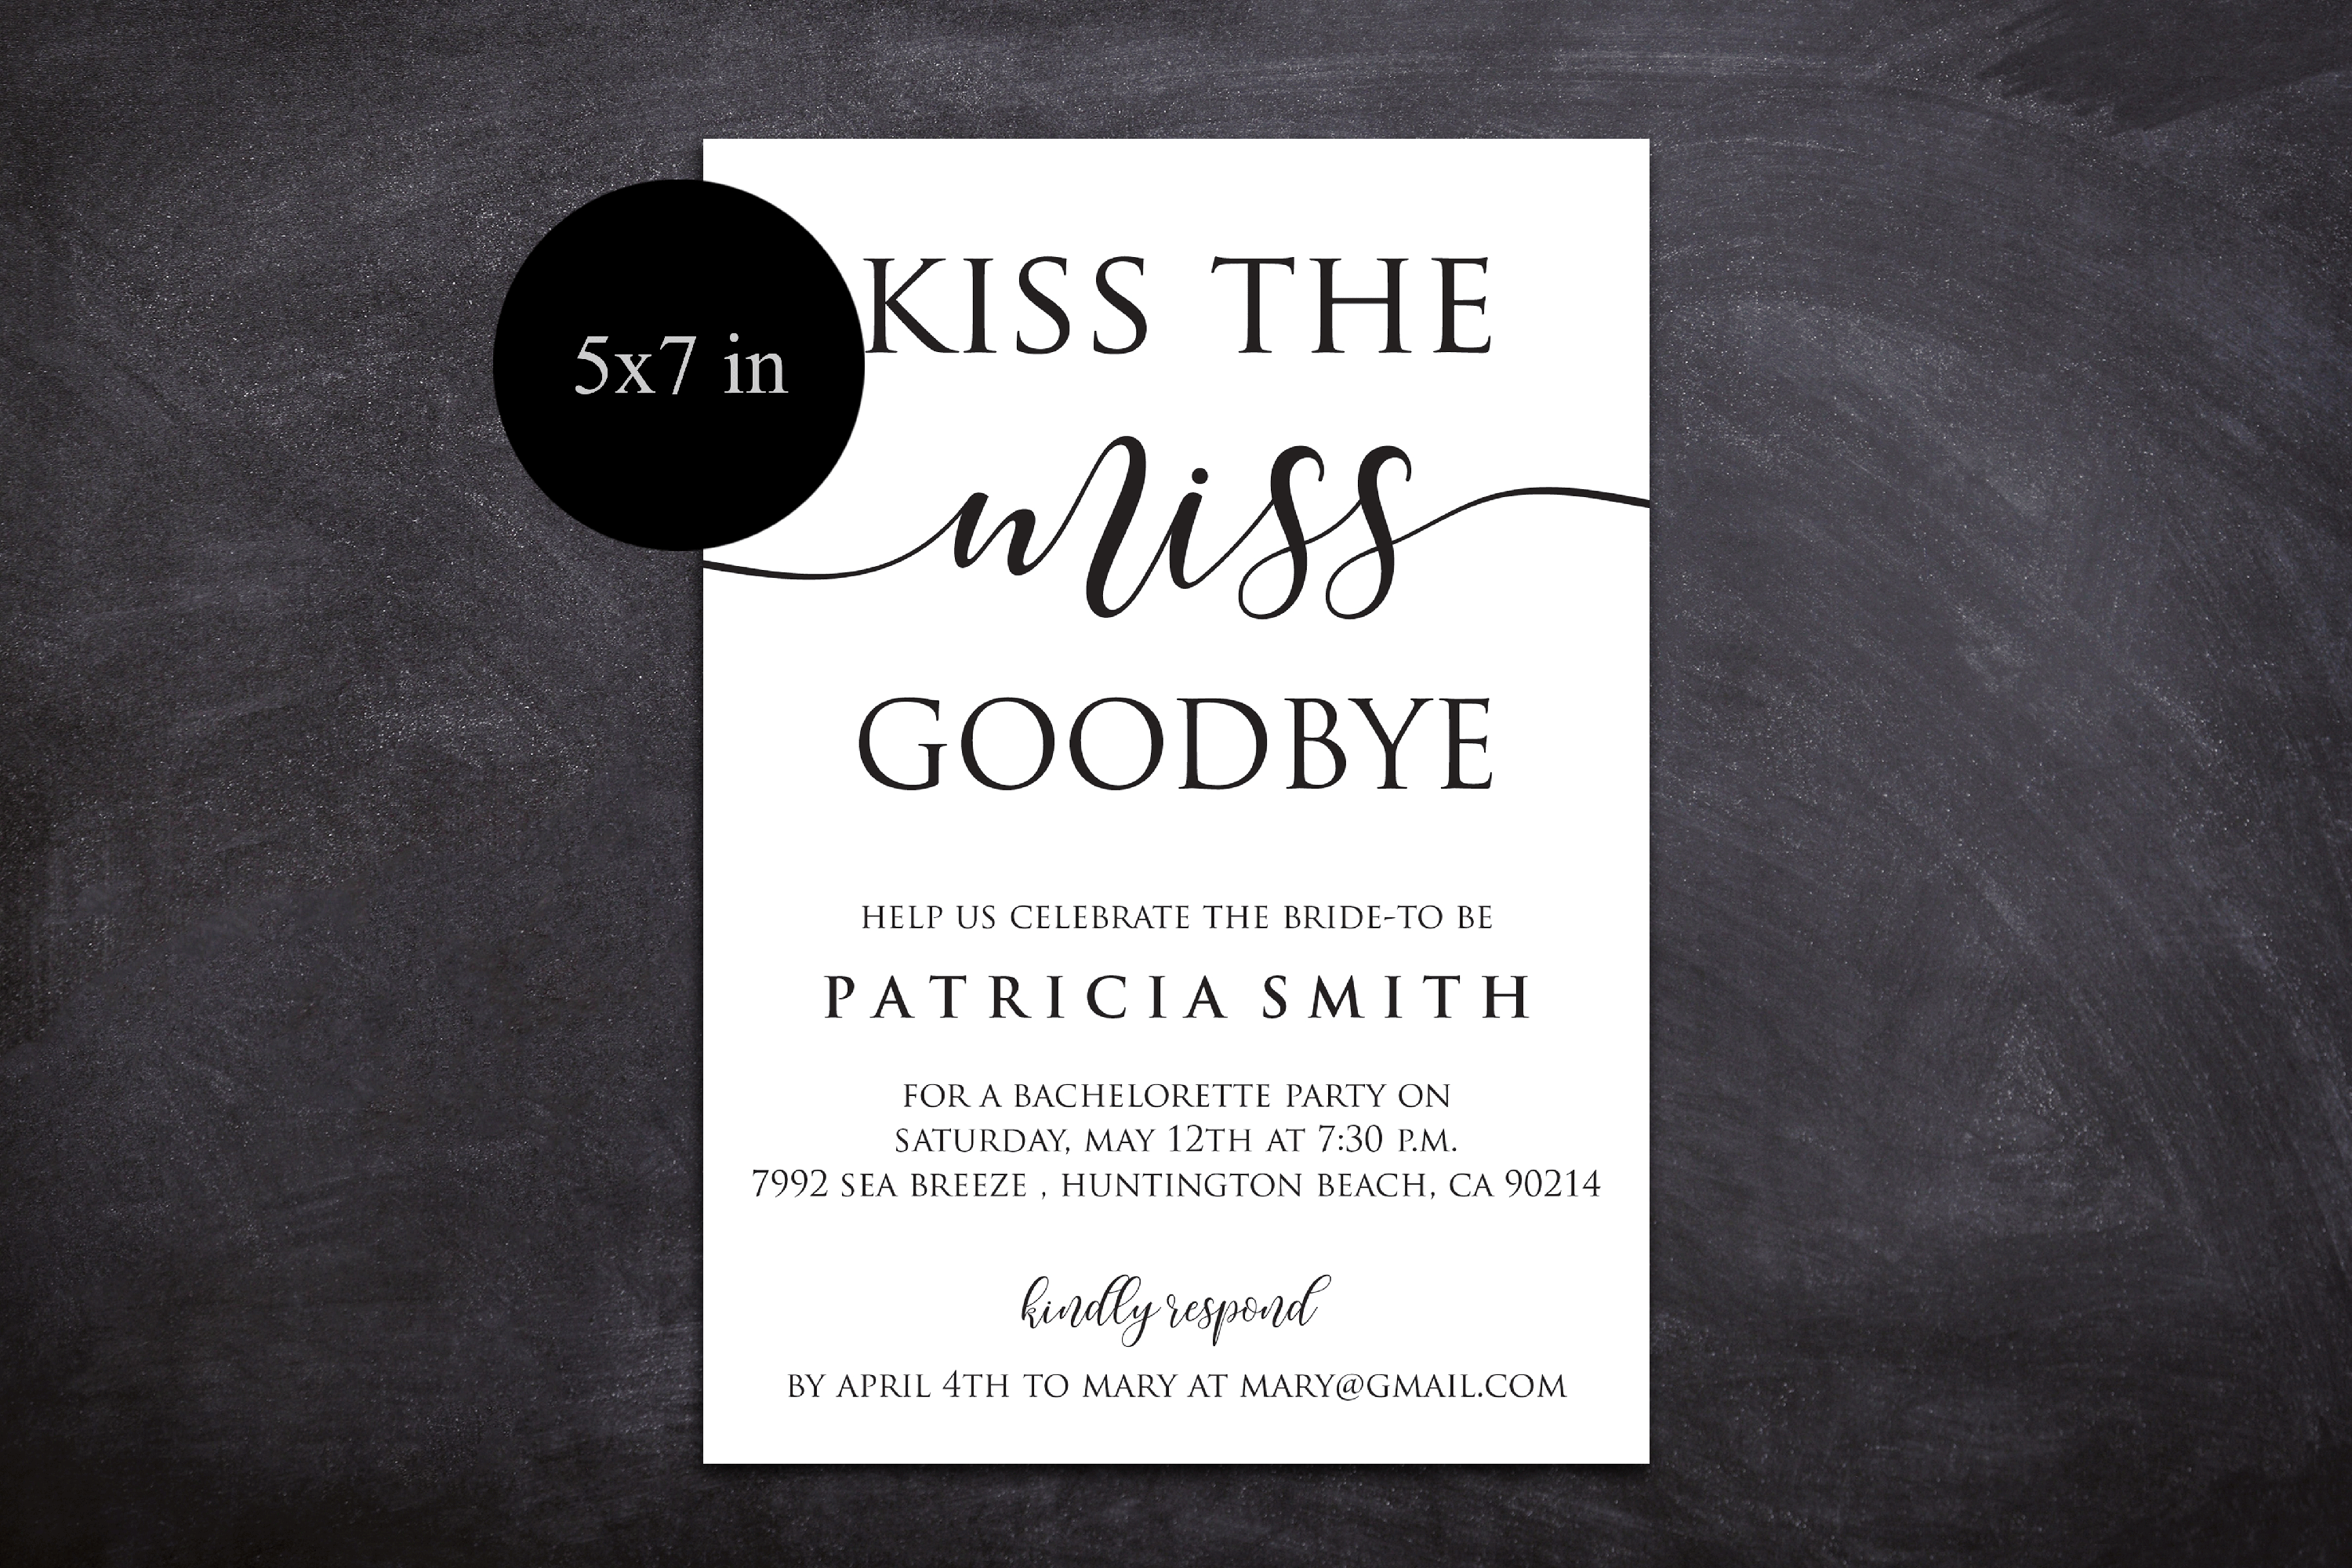 DIY Kiss The Miss Goodbye Bachelorette Party Invitation example image 2